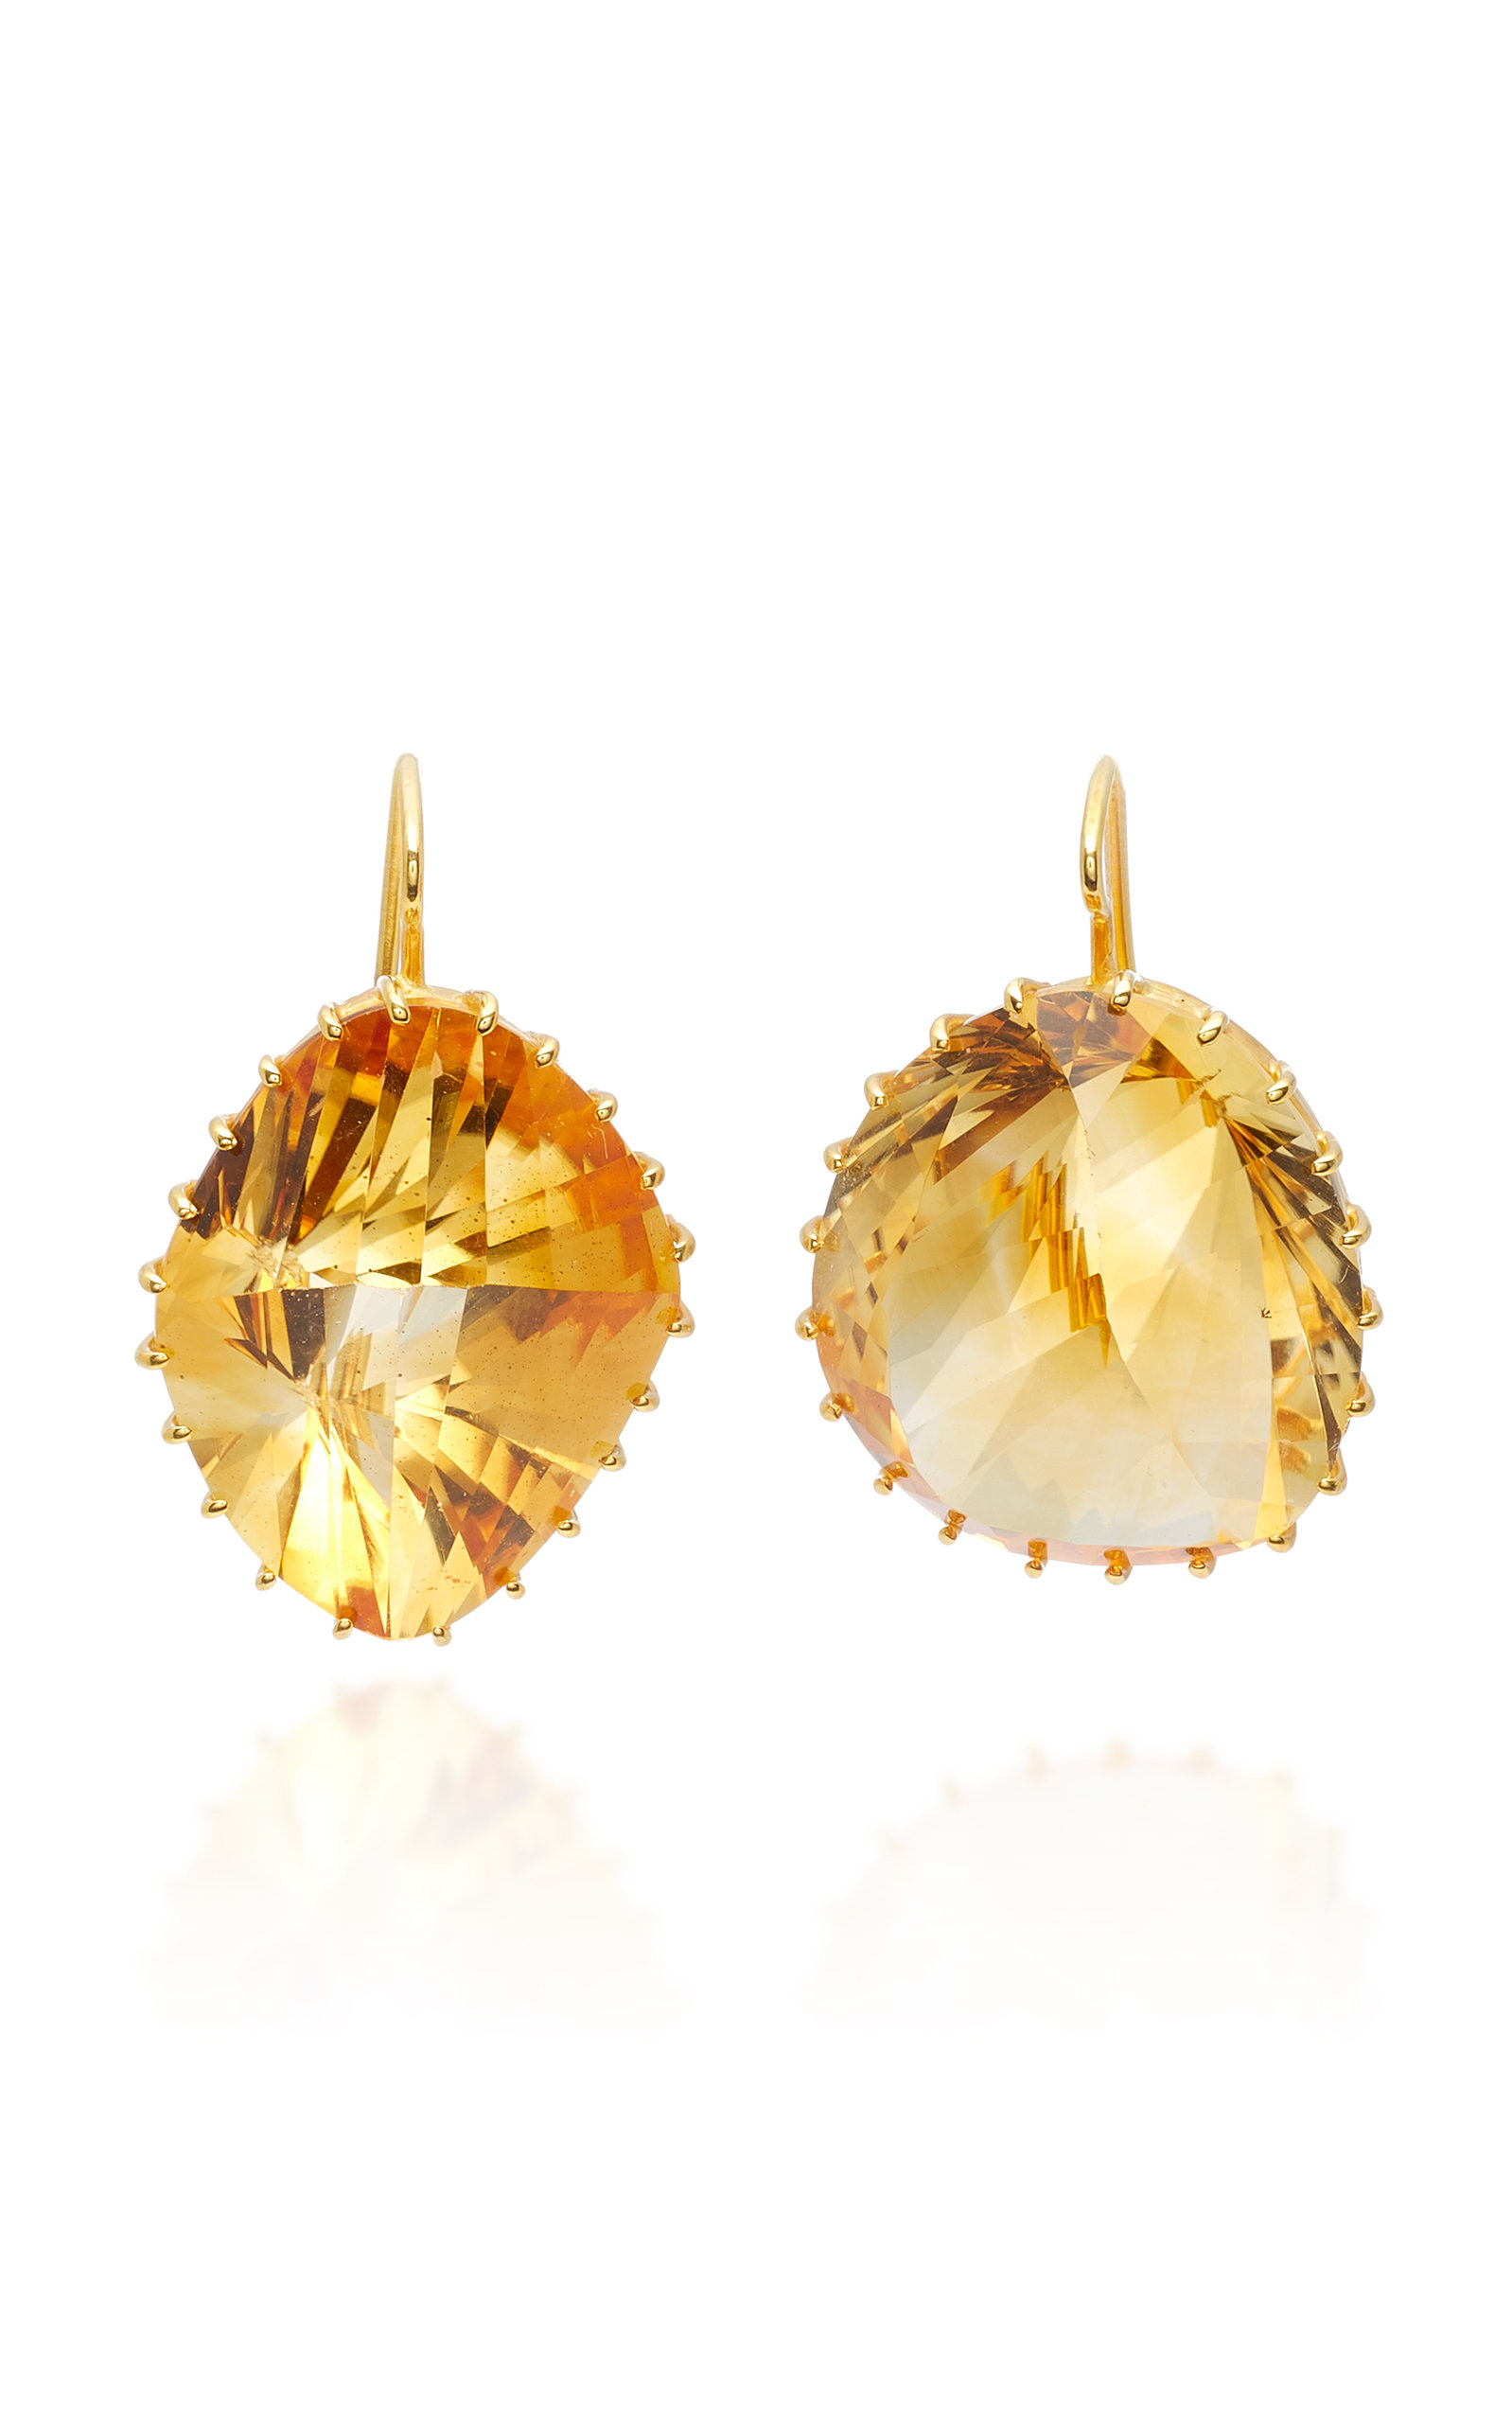 earrings gold citrine tiffany nyshowplace co schlumberger side and img